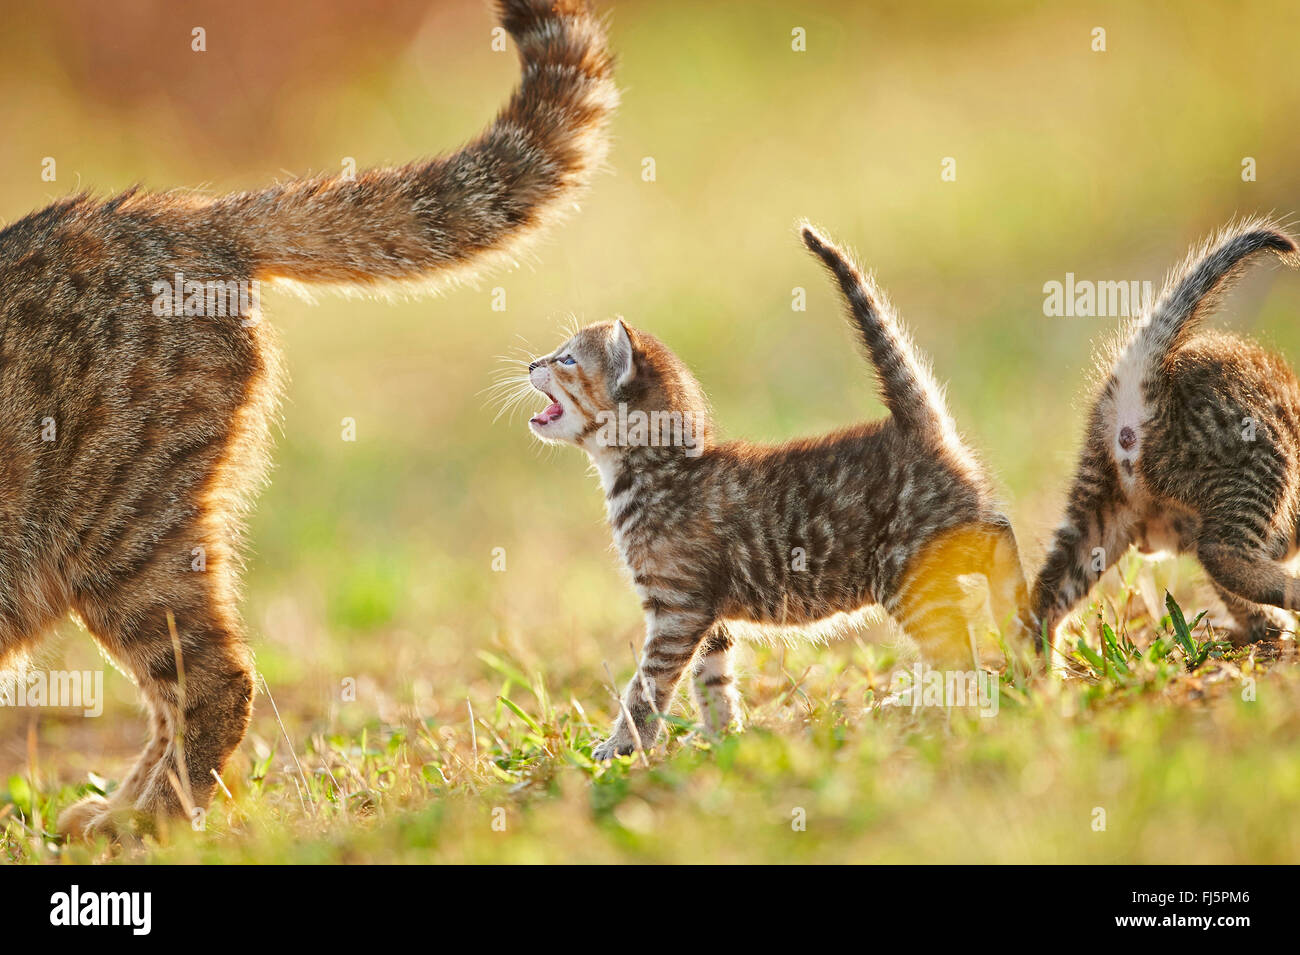 domestic cat, house cat (Felis silvestris f. catus), miaowing kitten with one sibling and mother in a meadow, Germany - Stock Image